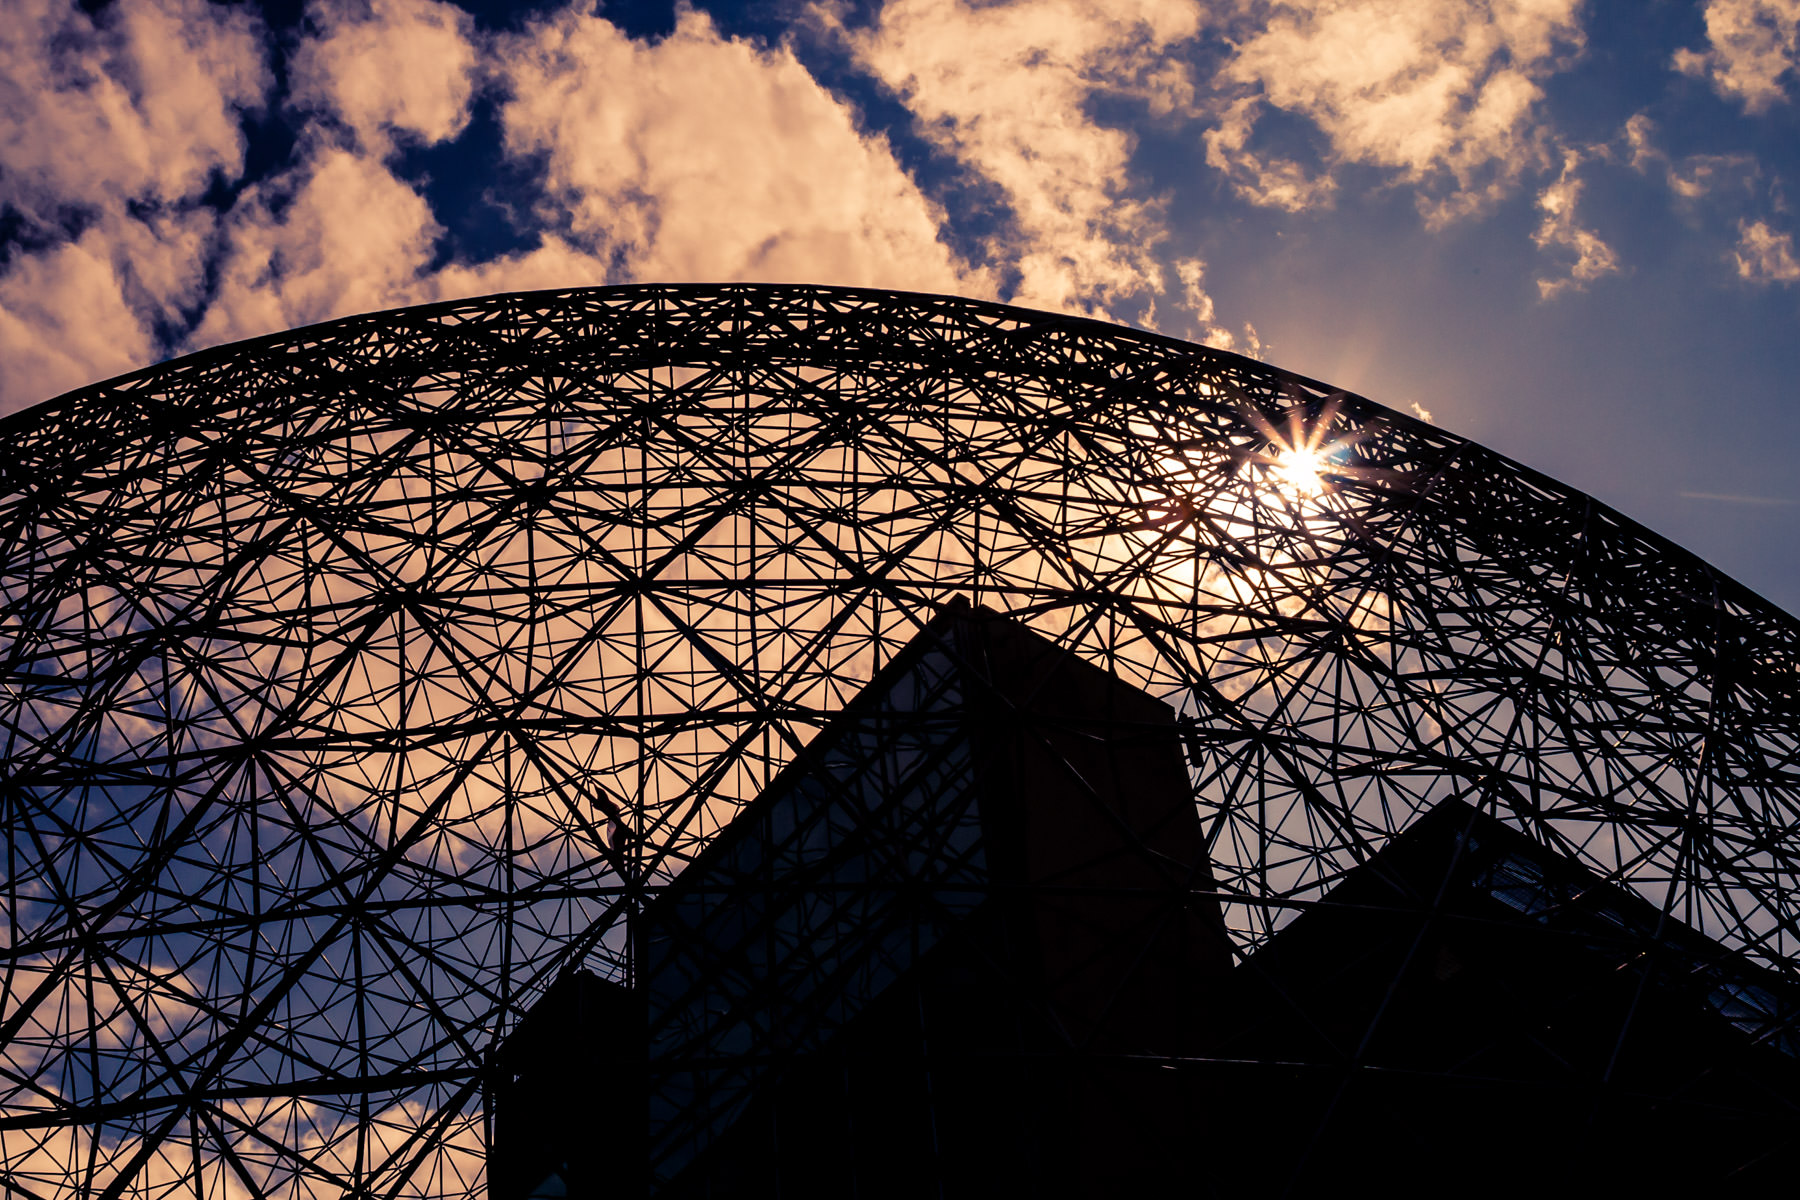 The sun peeks through the clouds above Montréal's Biosphére, the re-purposed Buckminster Fuller-designed Expo '67 United States Pavilion.